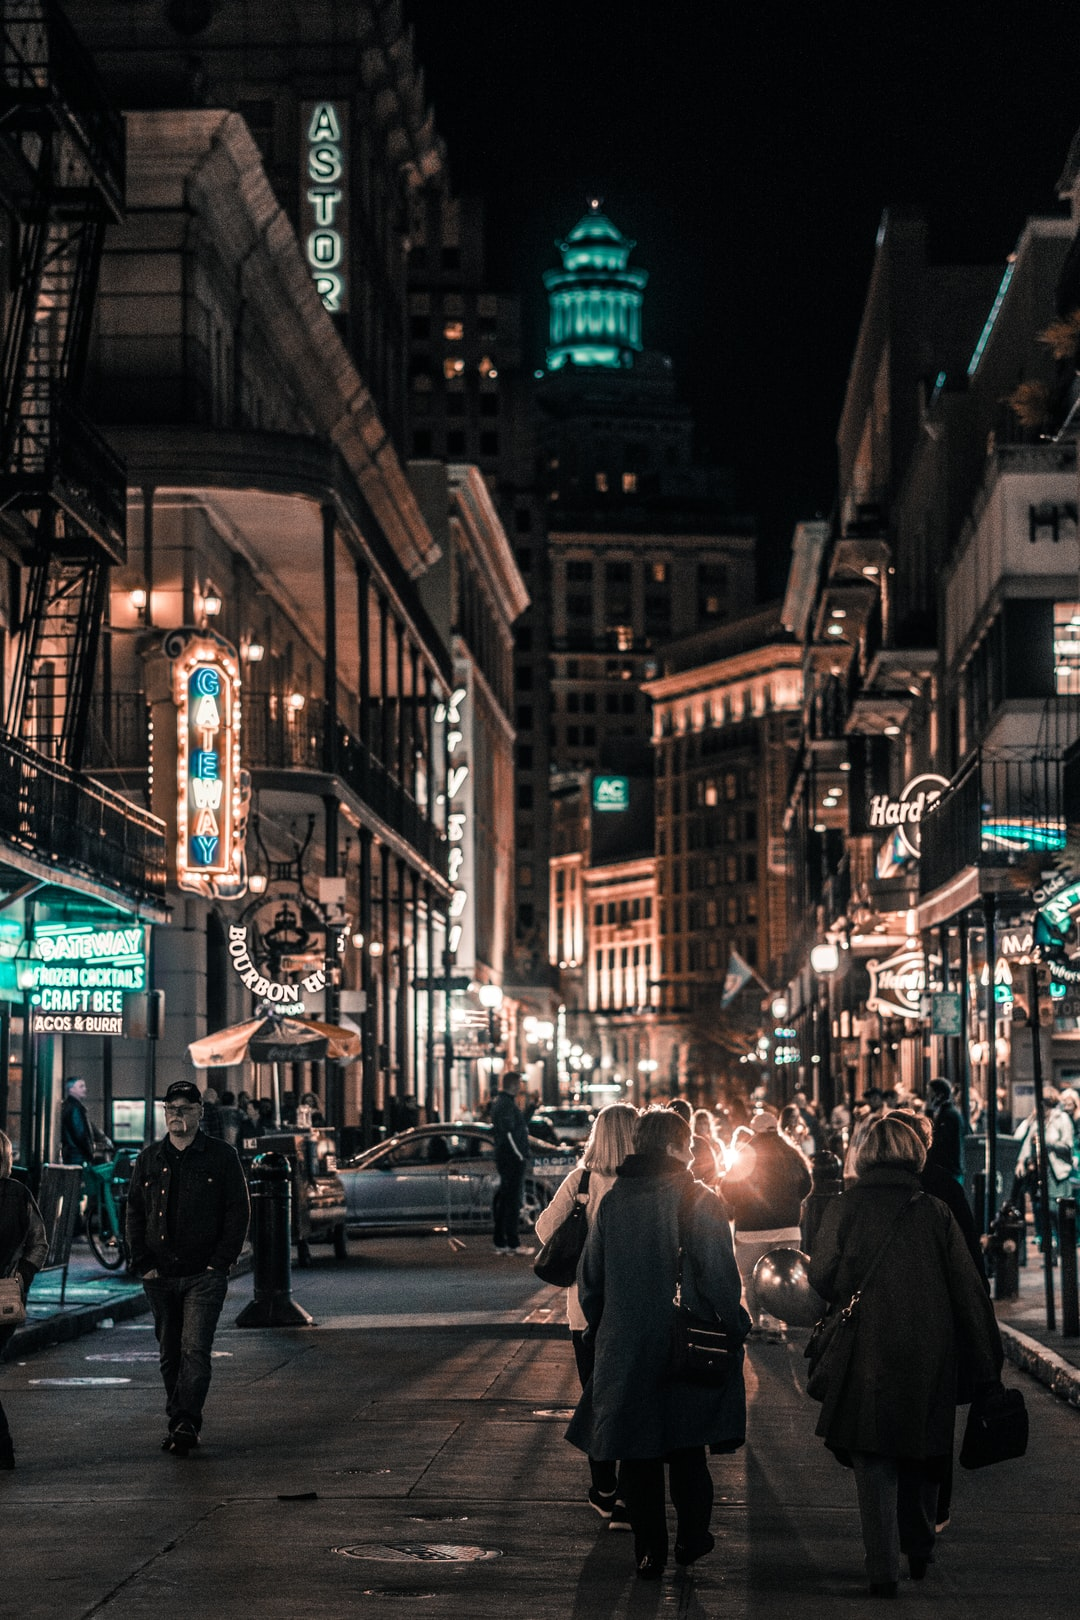 500 New Orleans Pictures Download Free Images On Unsplash